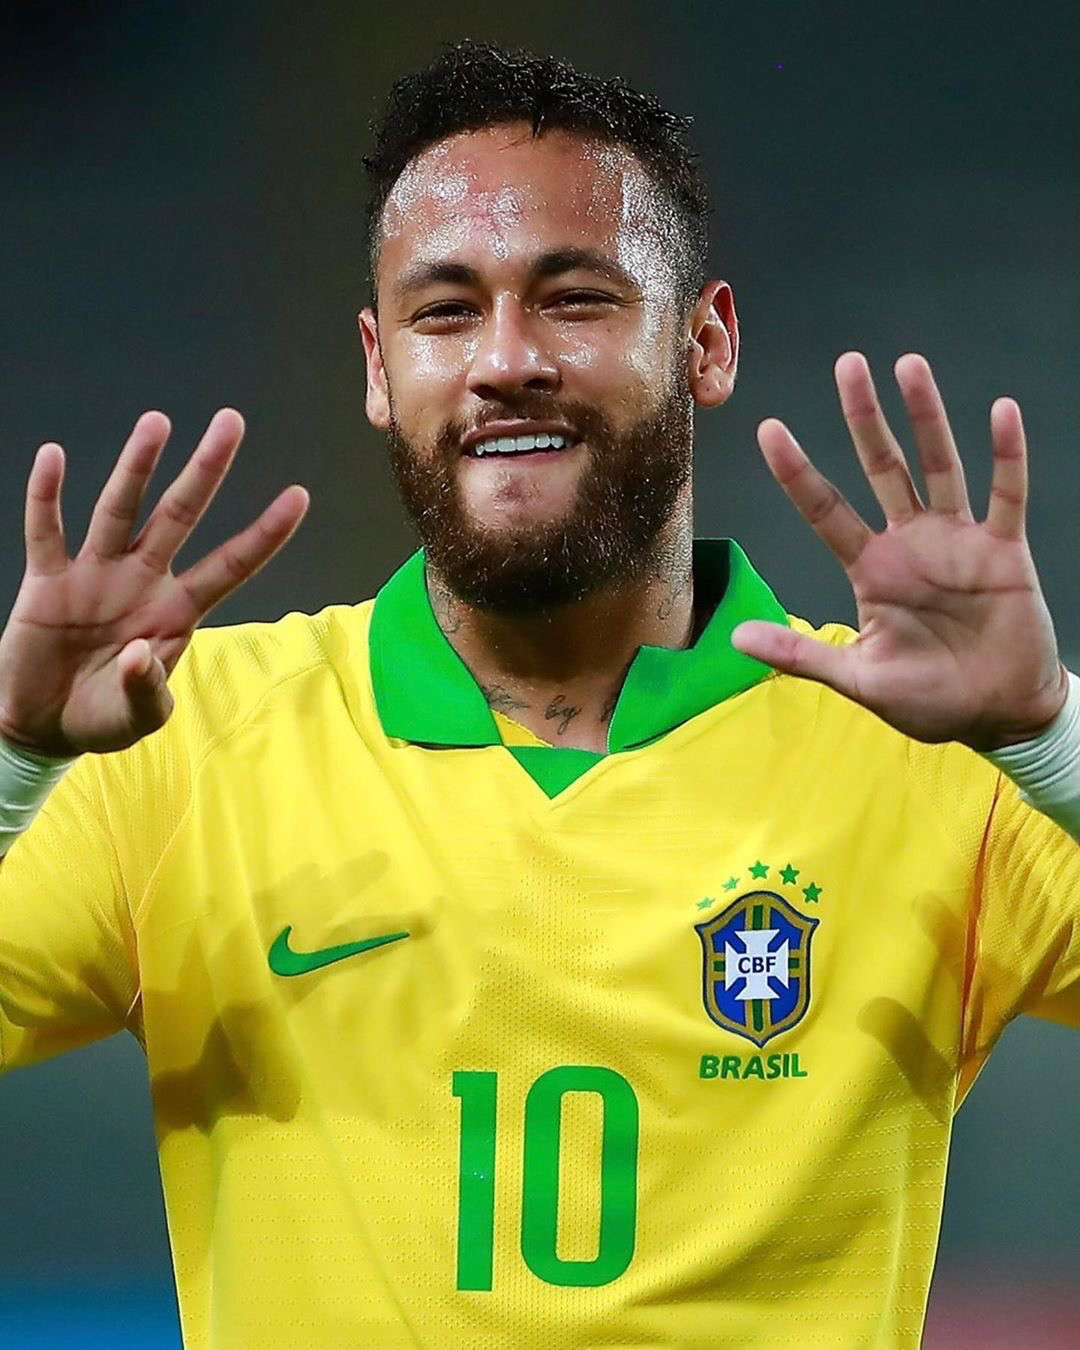 Neymar surpasses Ronaldo in Brazil